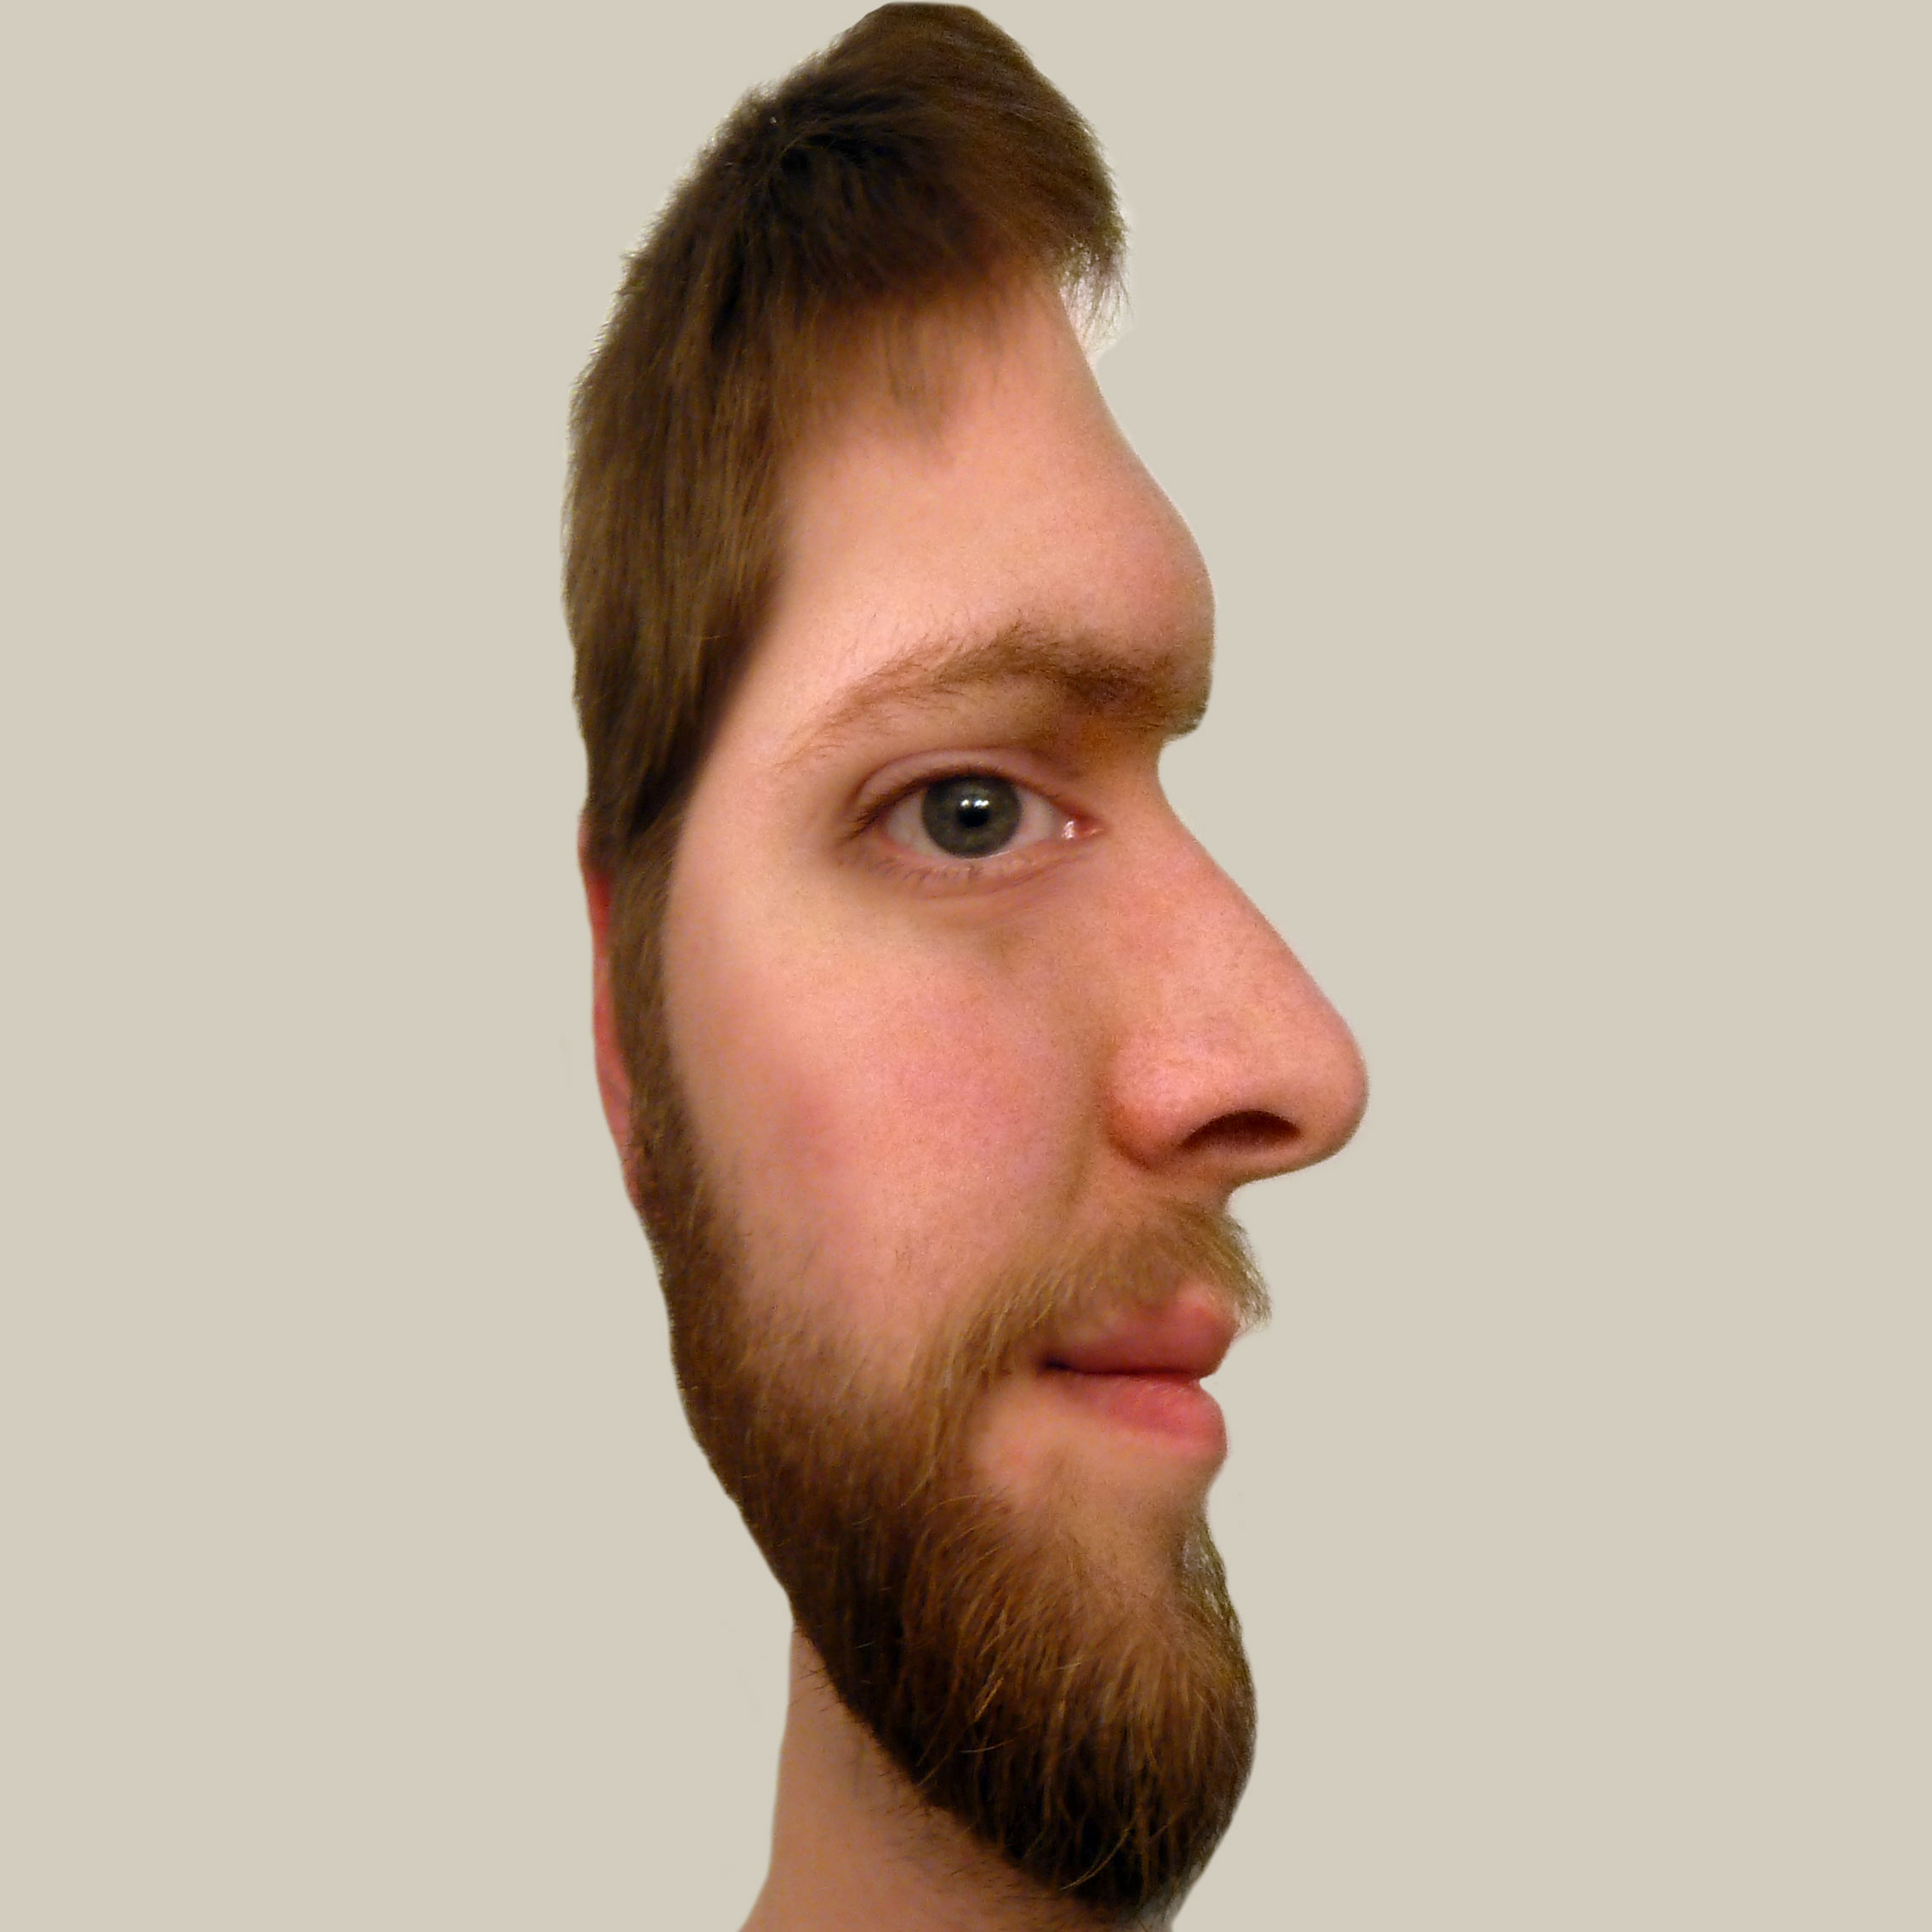 face profile illusion earthly mission